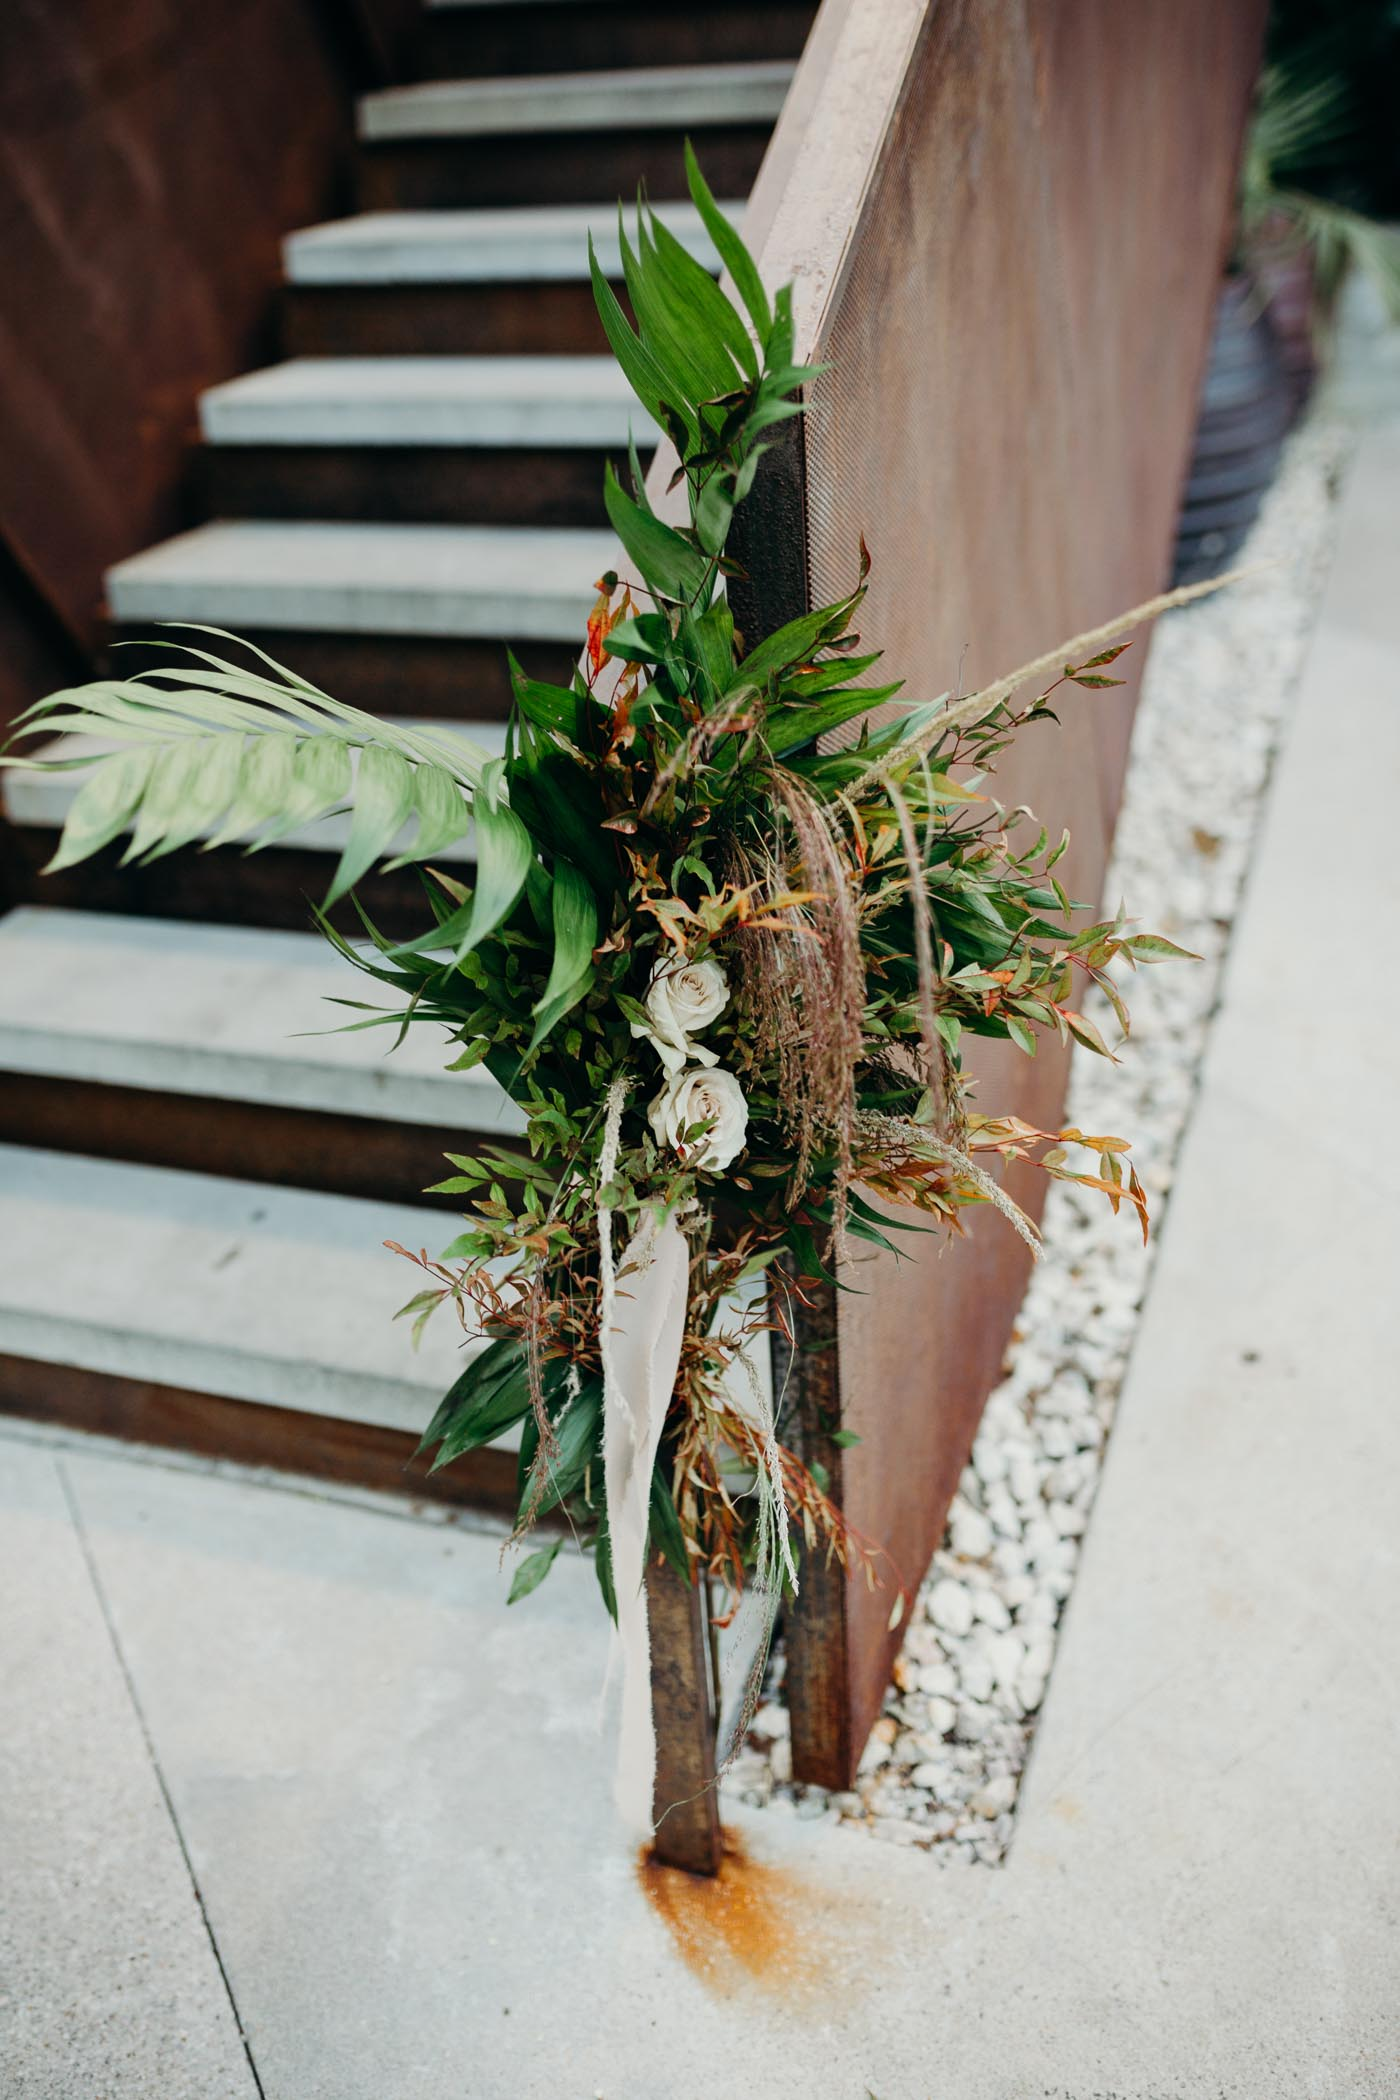 Flowers and greens tied on a stairway.